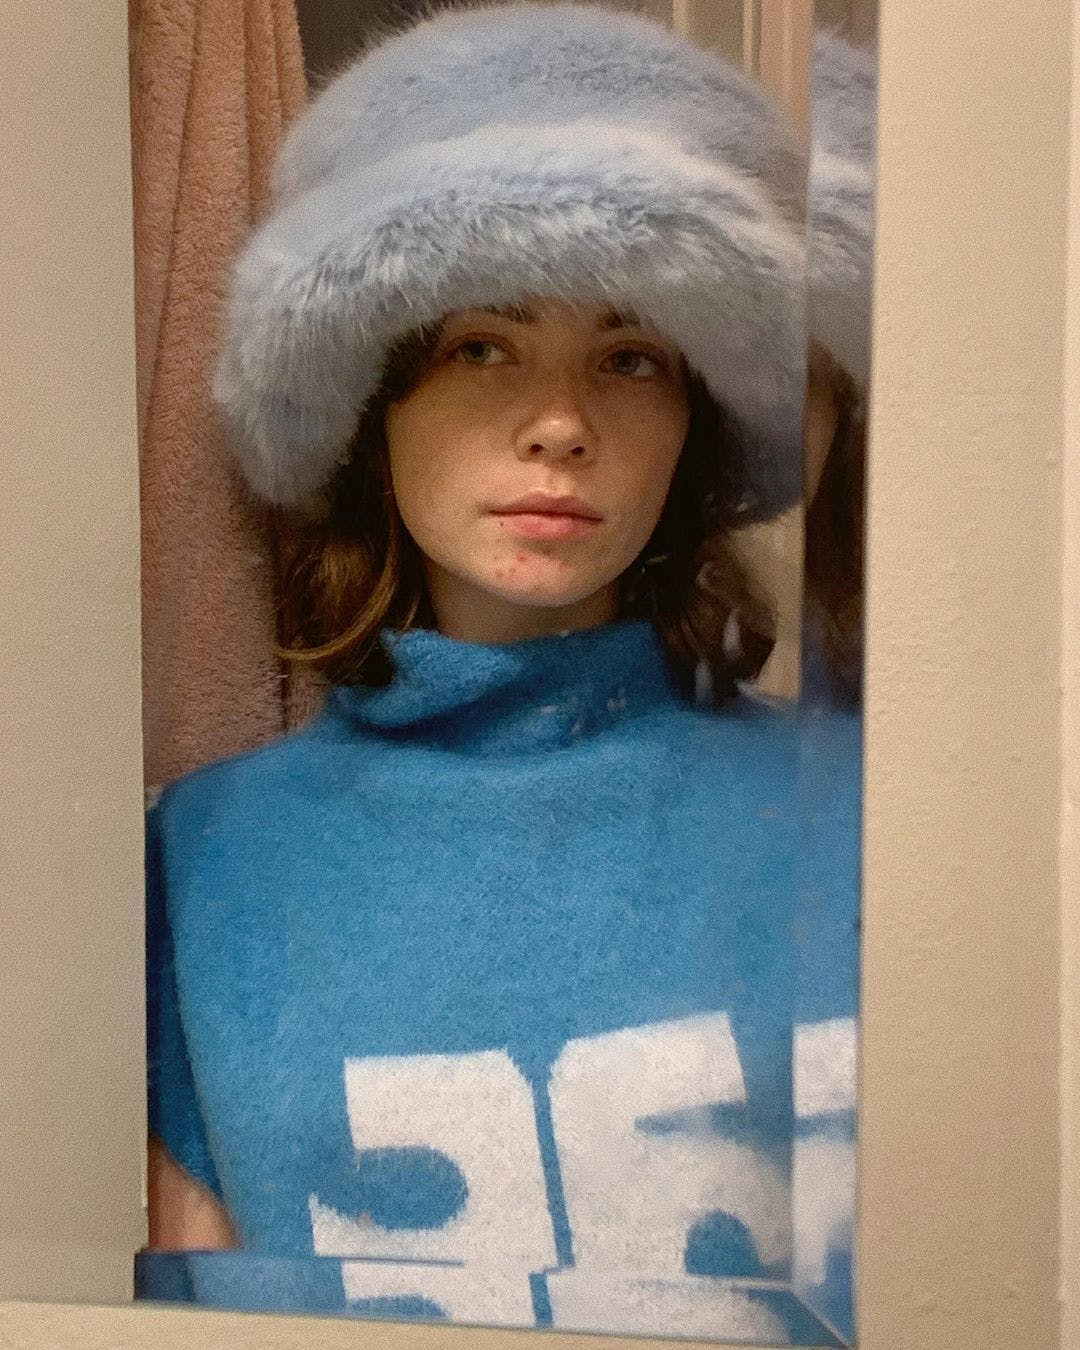 Furry Bucket Hats Will Convince You To Replace Your Beanie This Winter